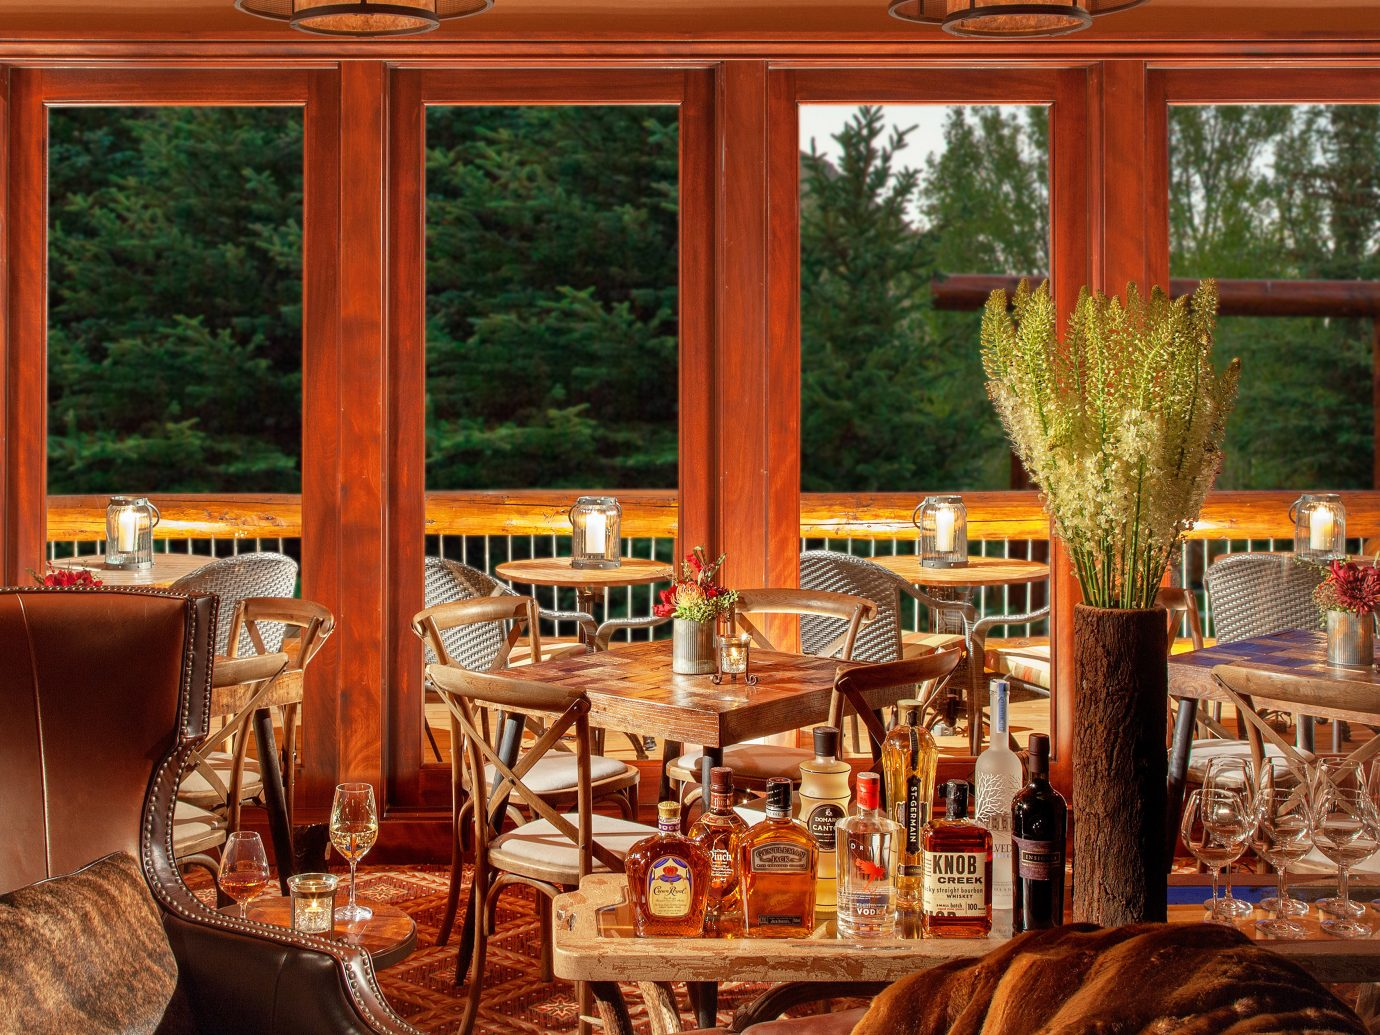 Budget Country Deck Family Hotels Lobby Lodge Lounge indoor room window estate restaurant home interior design living room wood dining room Bar meal furniture